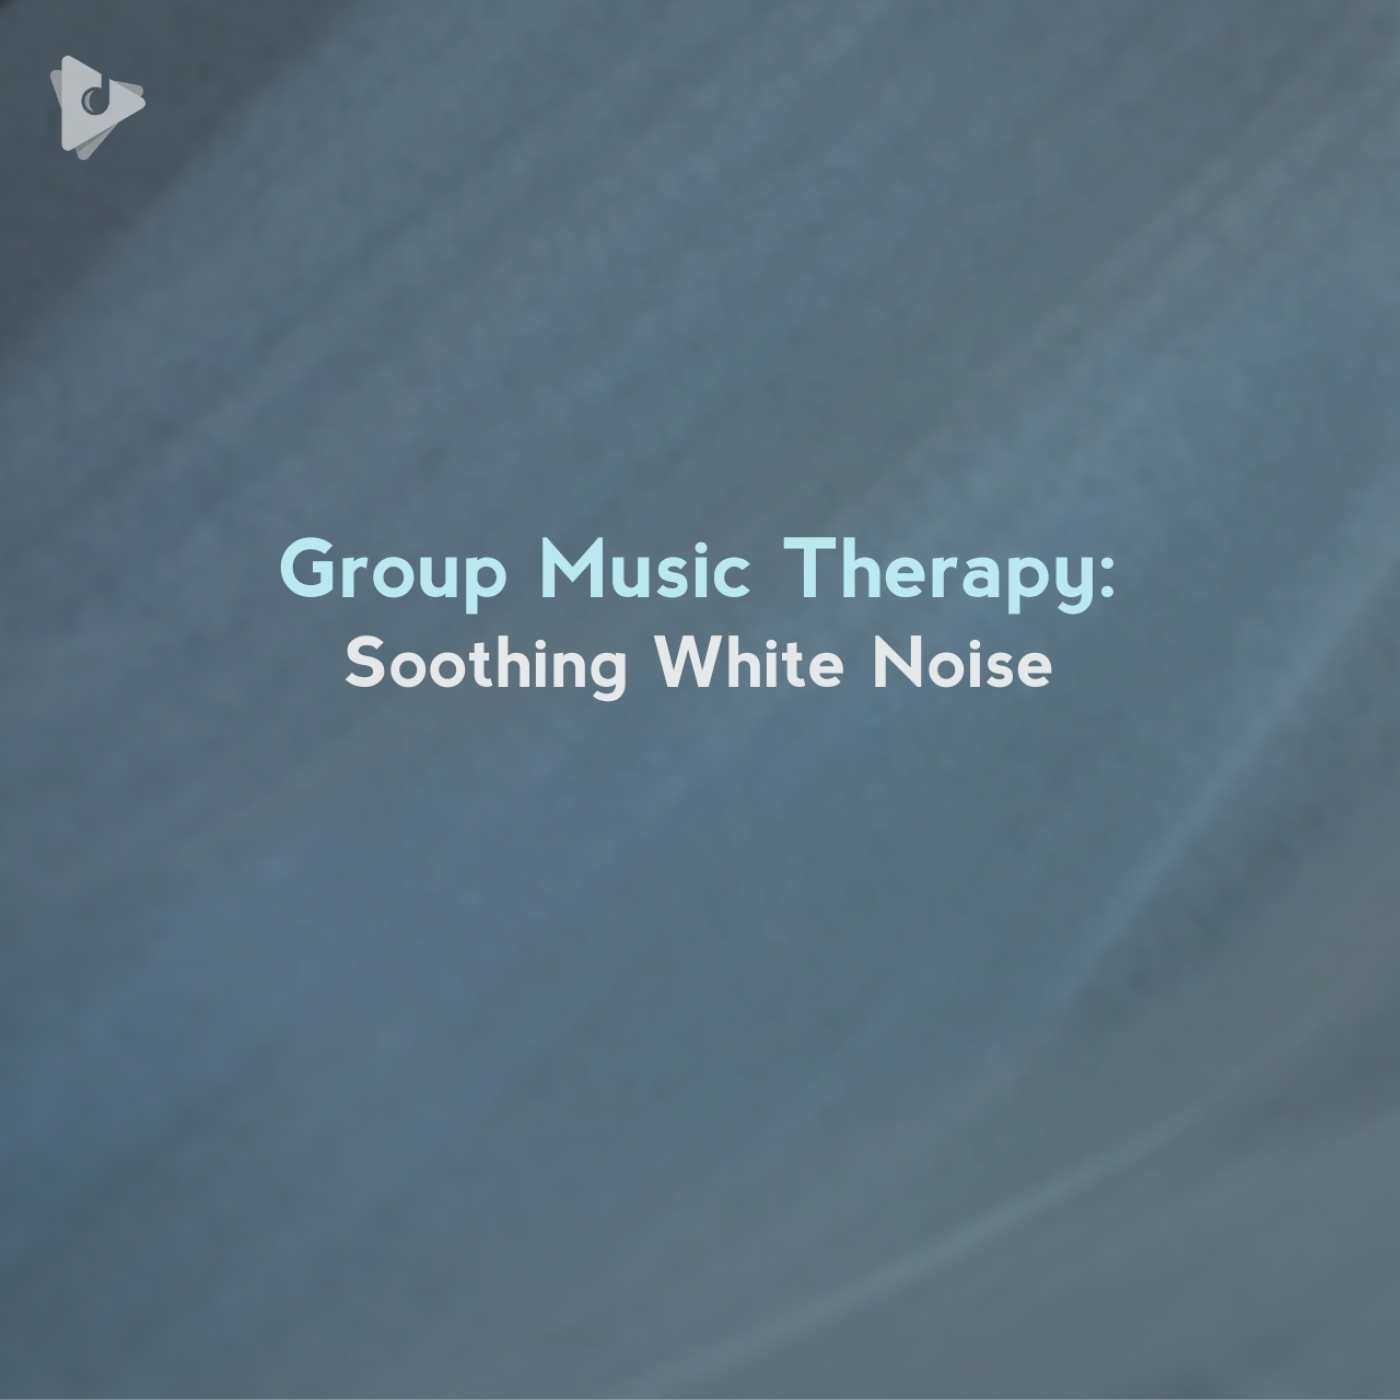 Group Music Therapy: Soothing White Noise